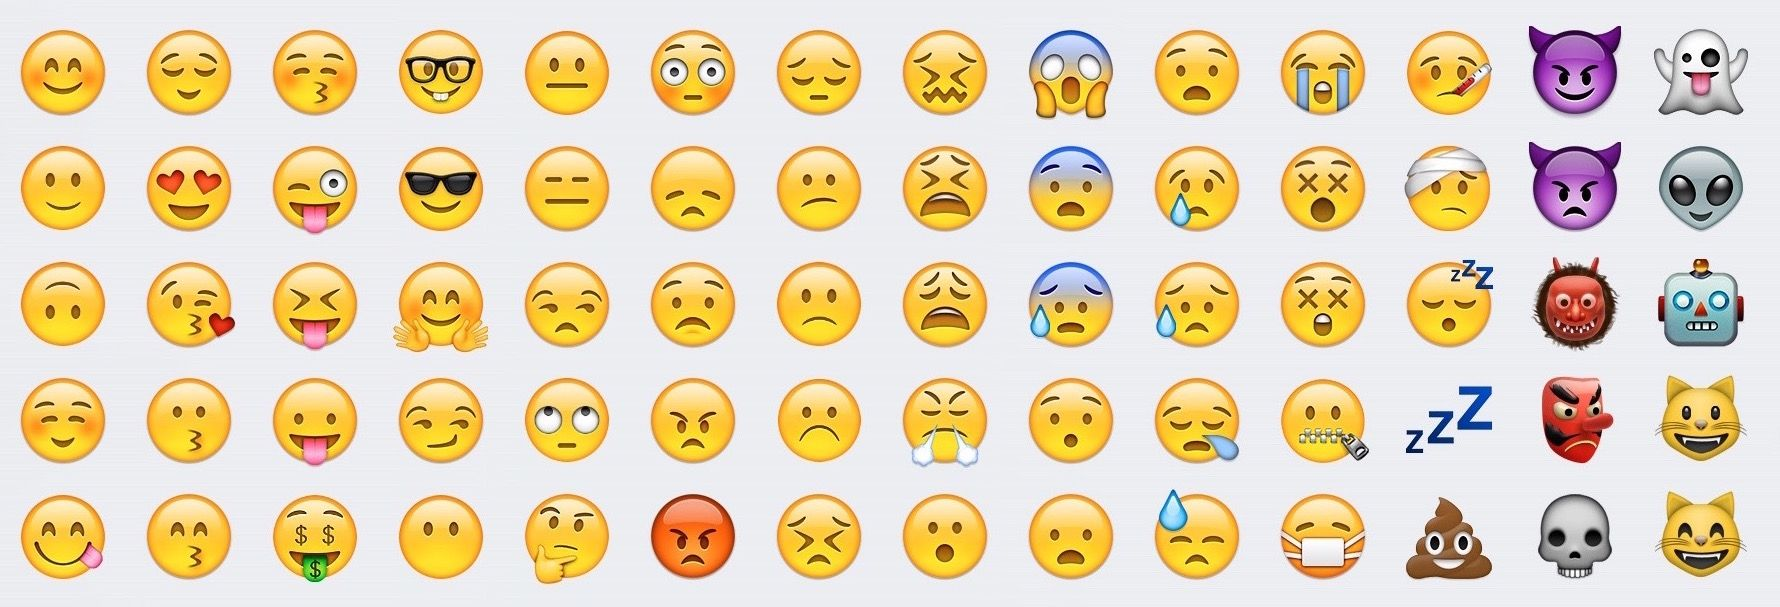 iOS 9.1 includes new emojis